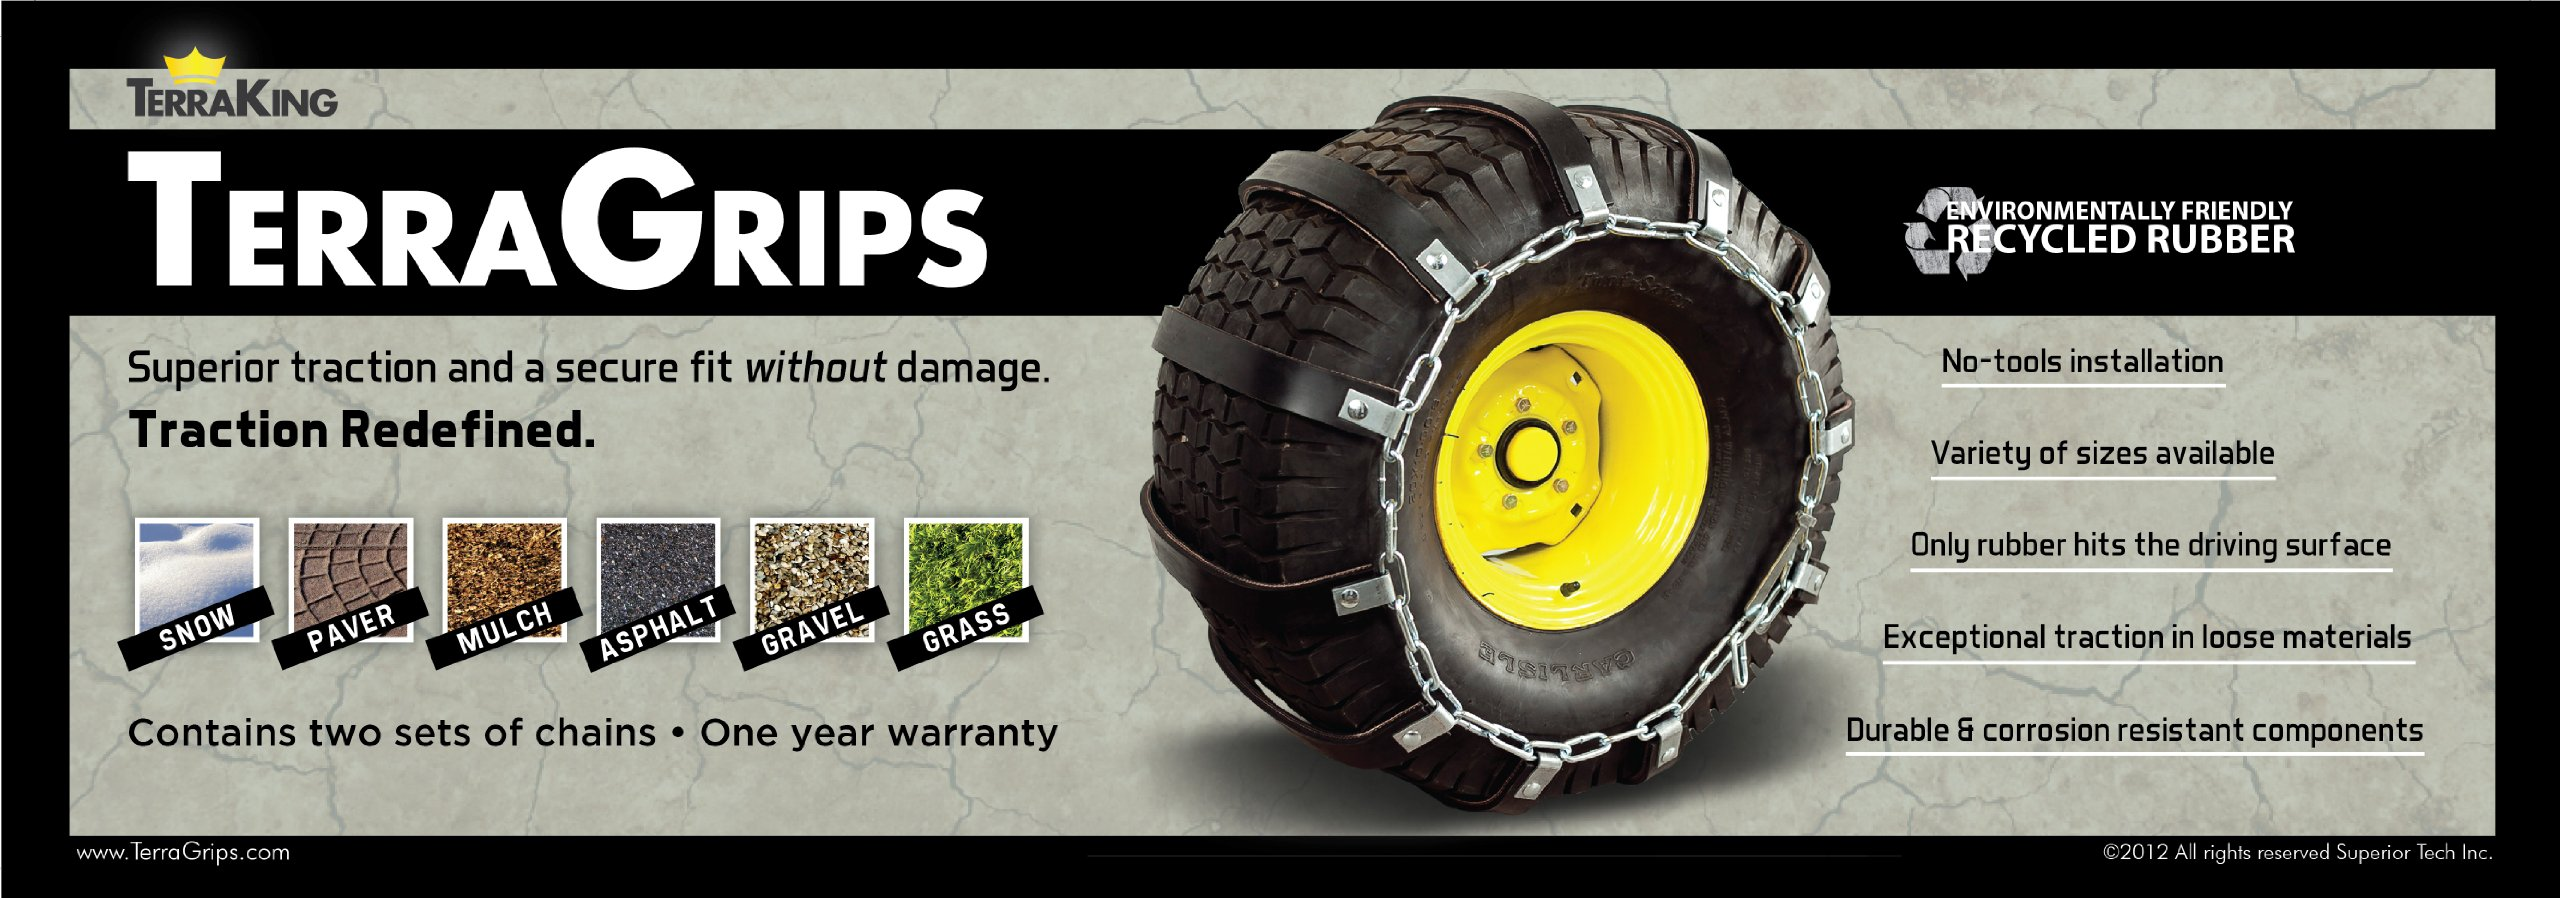 TerraGrips Tire Chains 24x12-12 [ST90009] by TerraKing (Image #2)